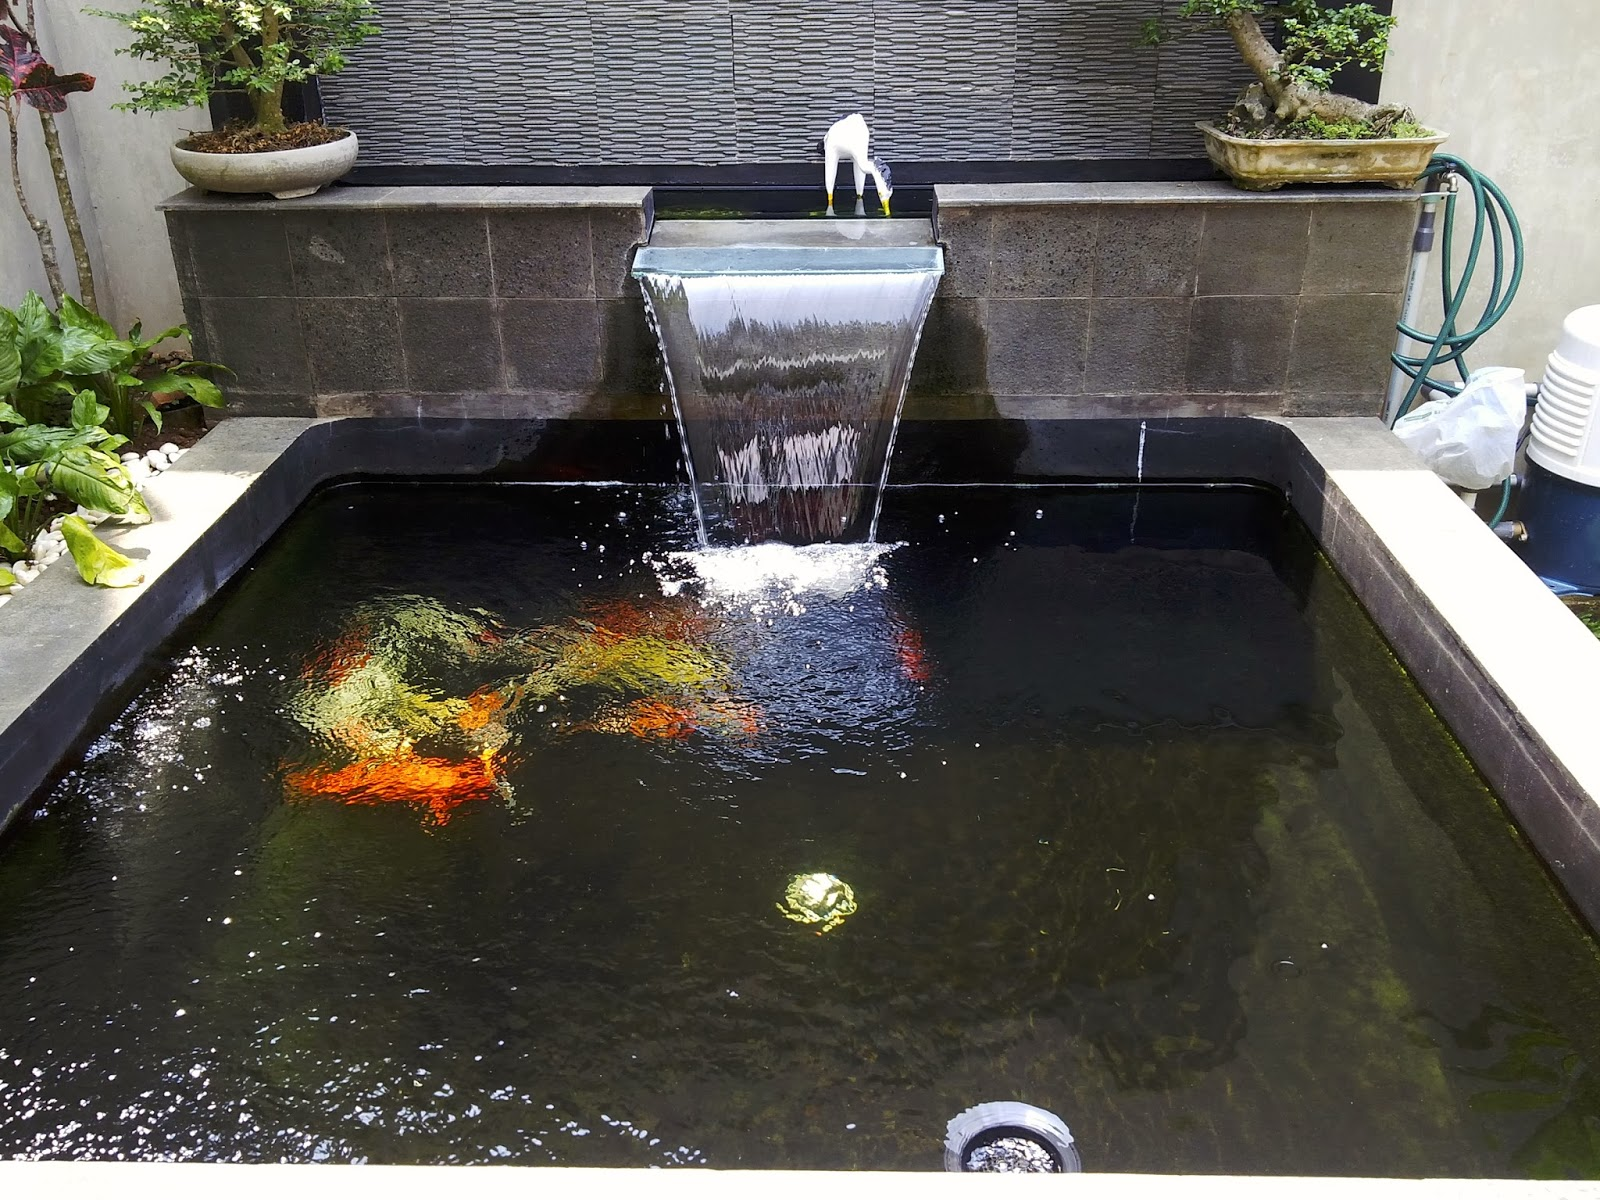 Anoxic filtration system yogas s pond modifications and for Best filter system for small pond